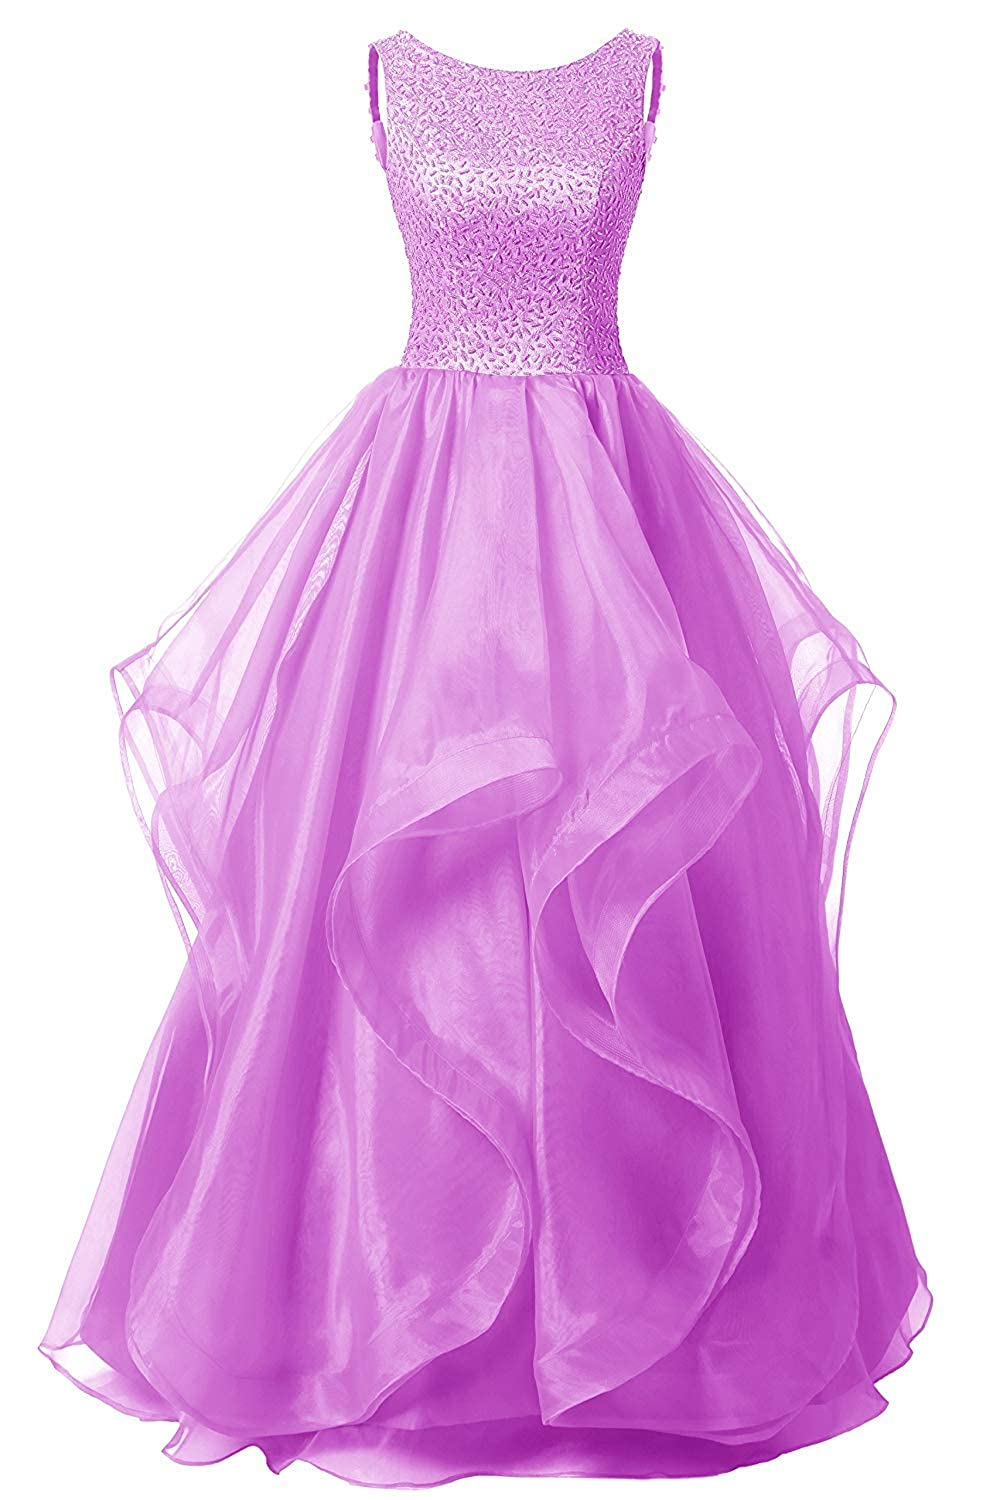 purplec Uther Long Formal Evening Prom Dress Organza Bridesmaid Dresses Beaded Gown